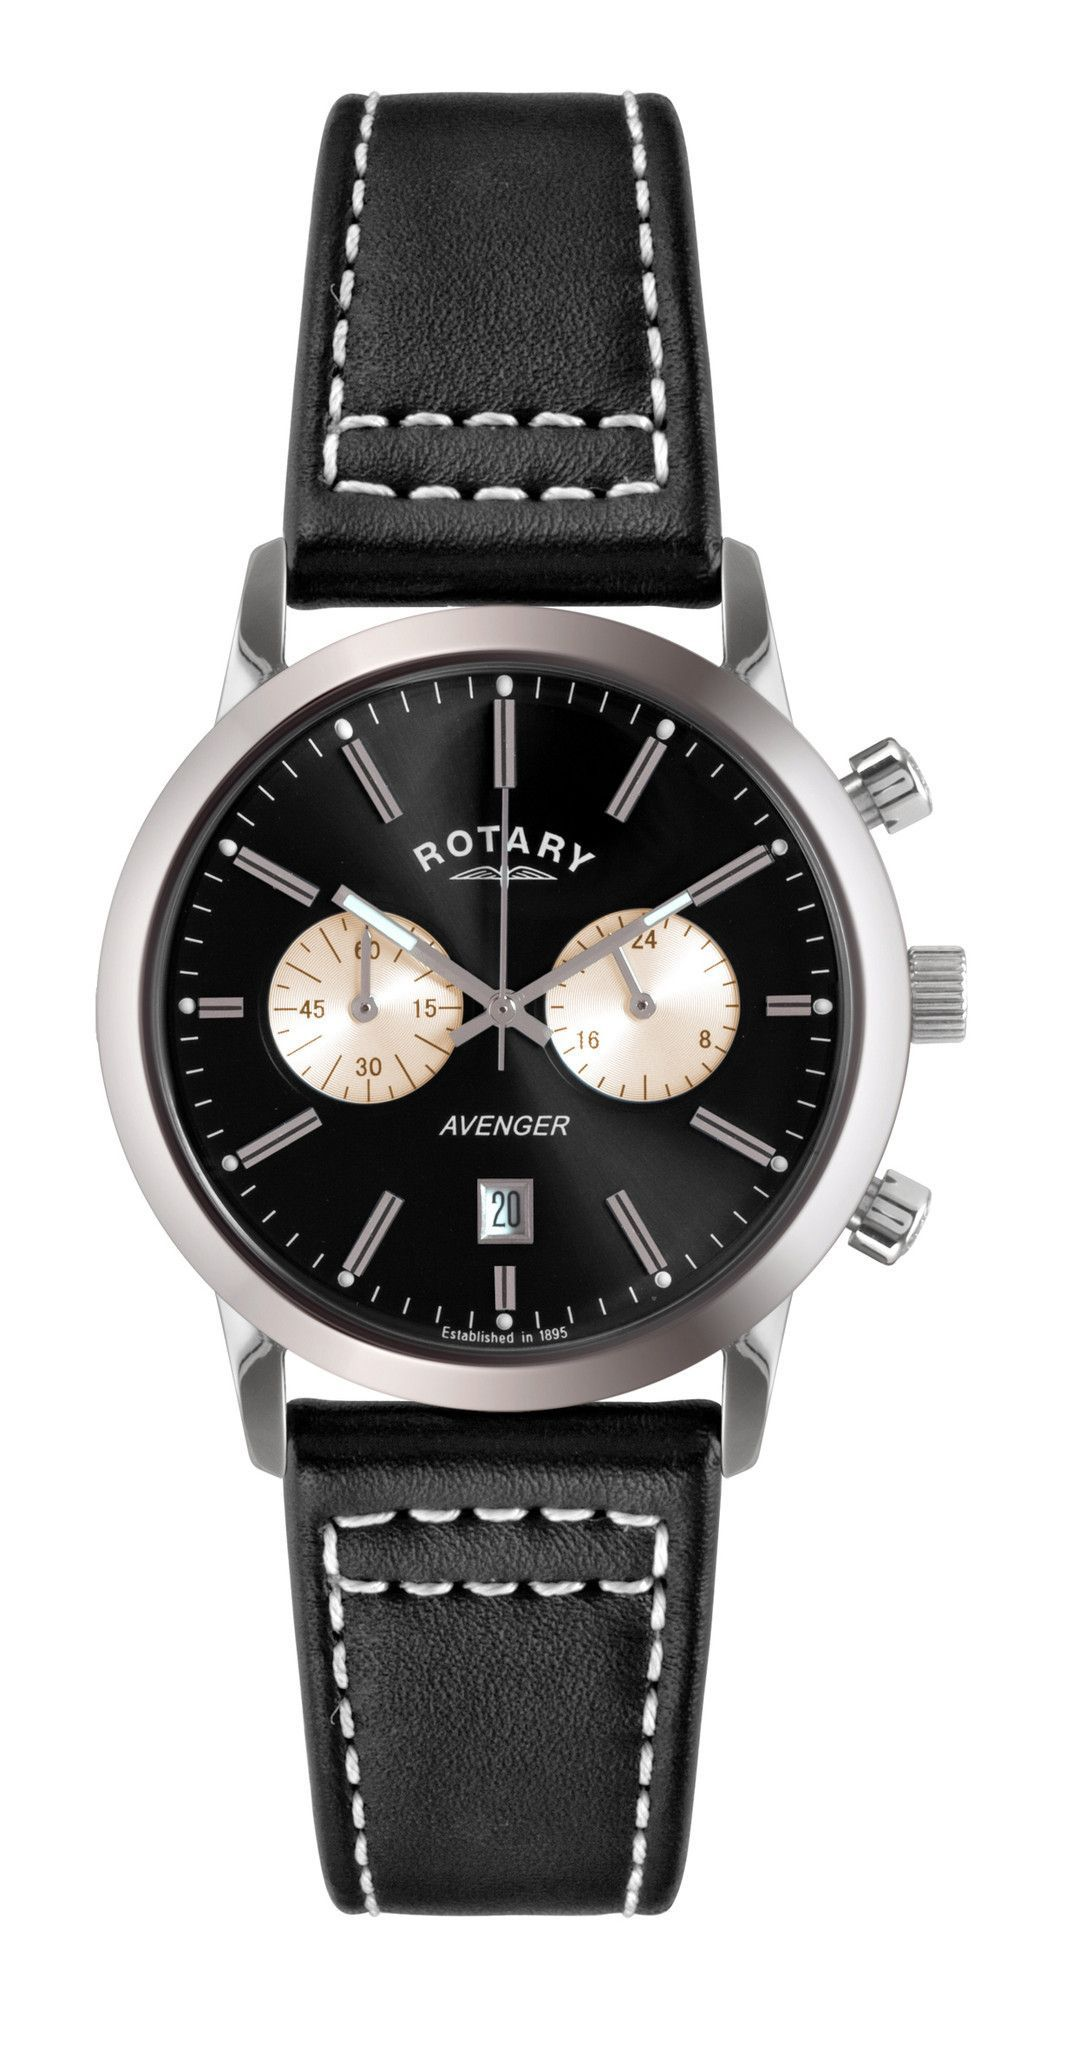 Rotary GS02730 04 Men s Watch Chronograph Black Dial Avenger With Black  Leather Strap 630b0e4a8d4